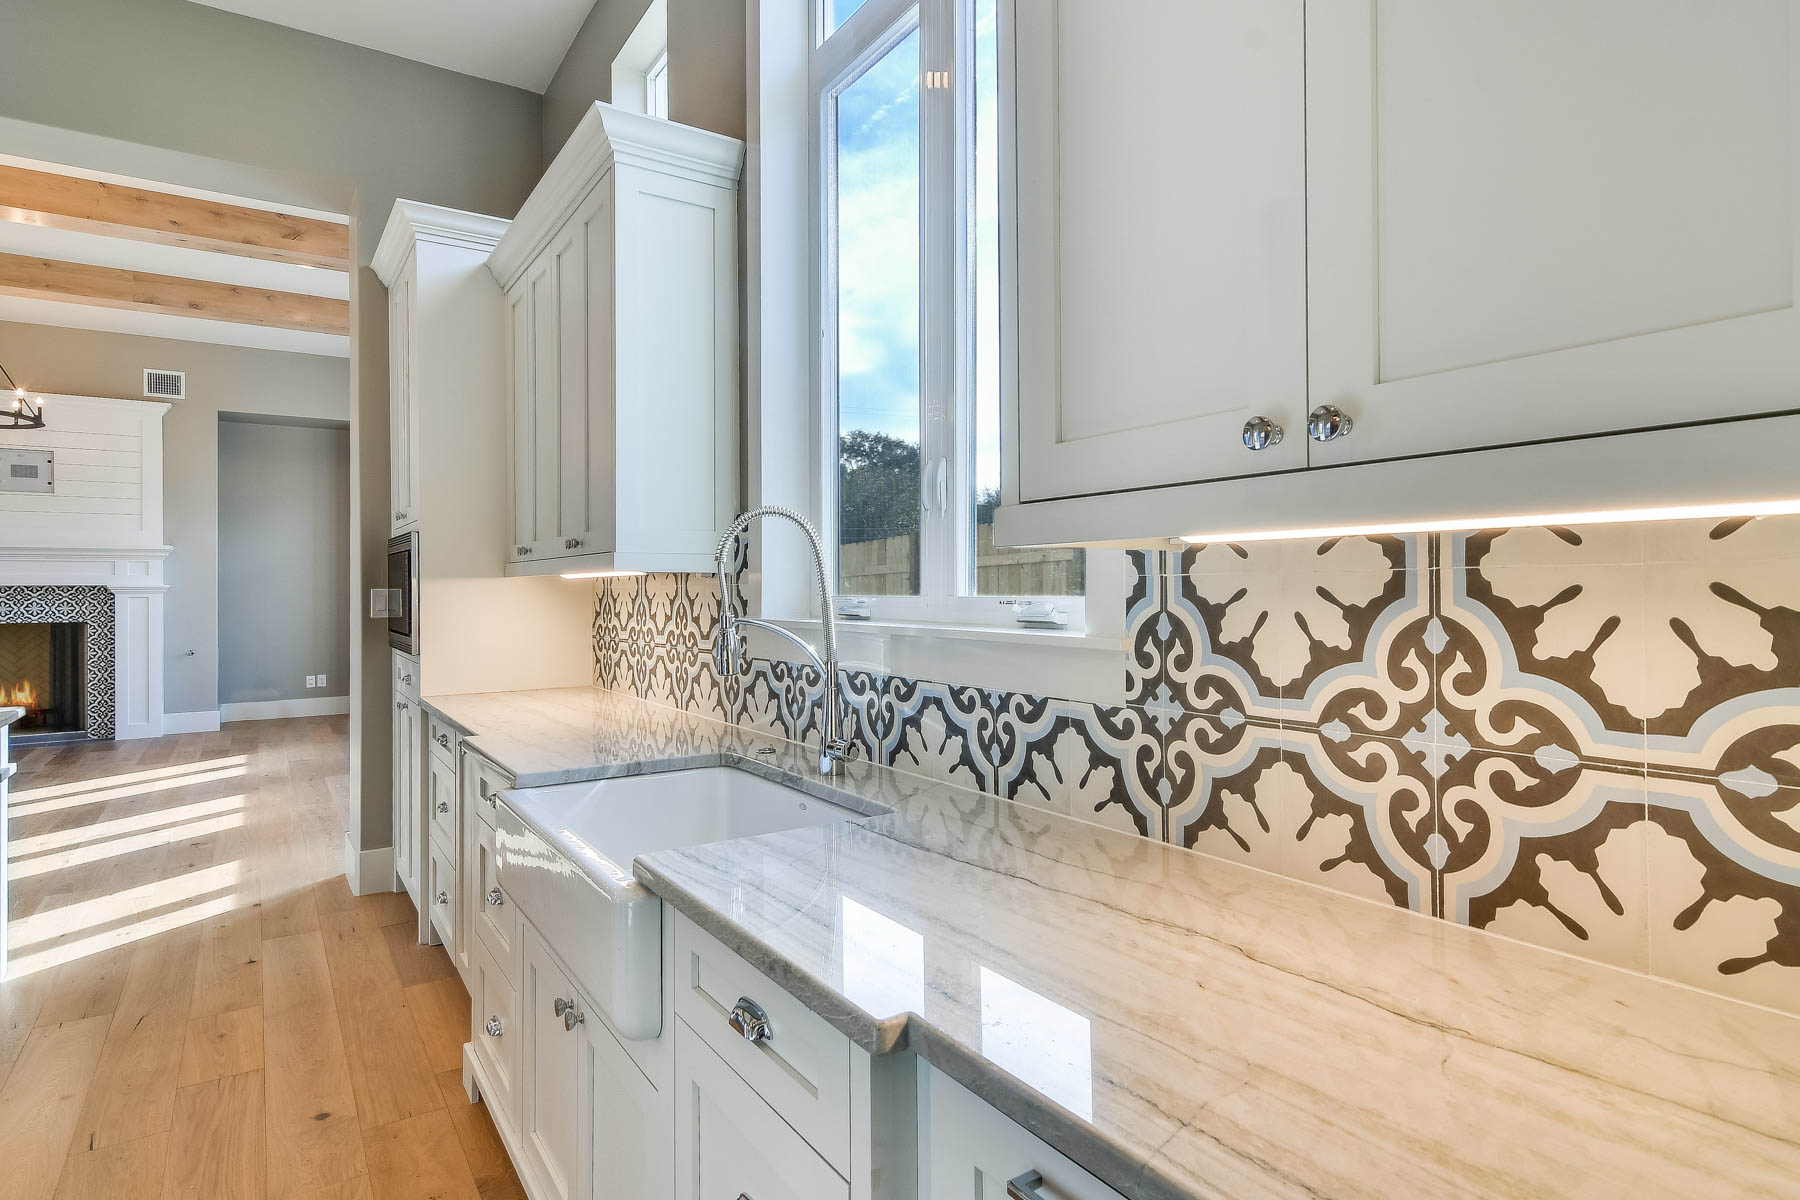 Additional photo for property listing at Tradition and Modernity Combined in Terrell Hills 1016 Garraty Rd San Antonio, Texas 78209 United States